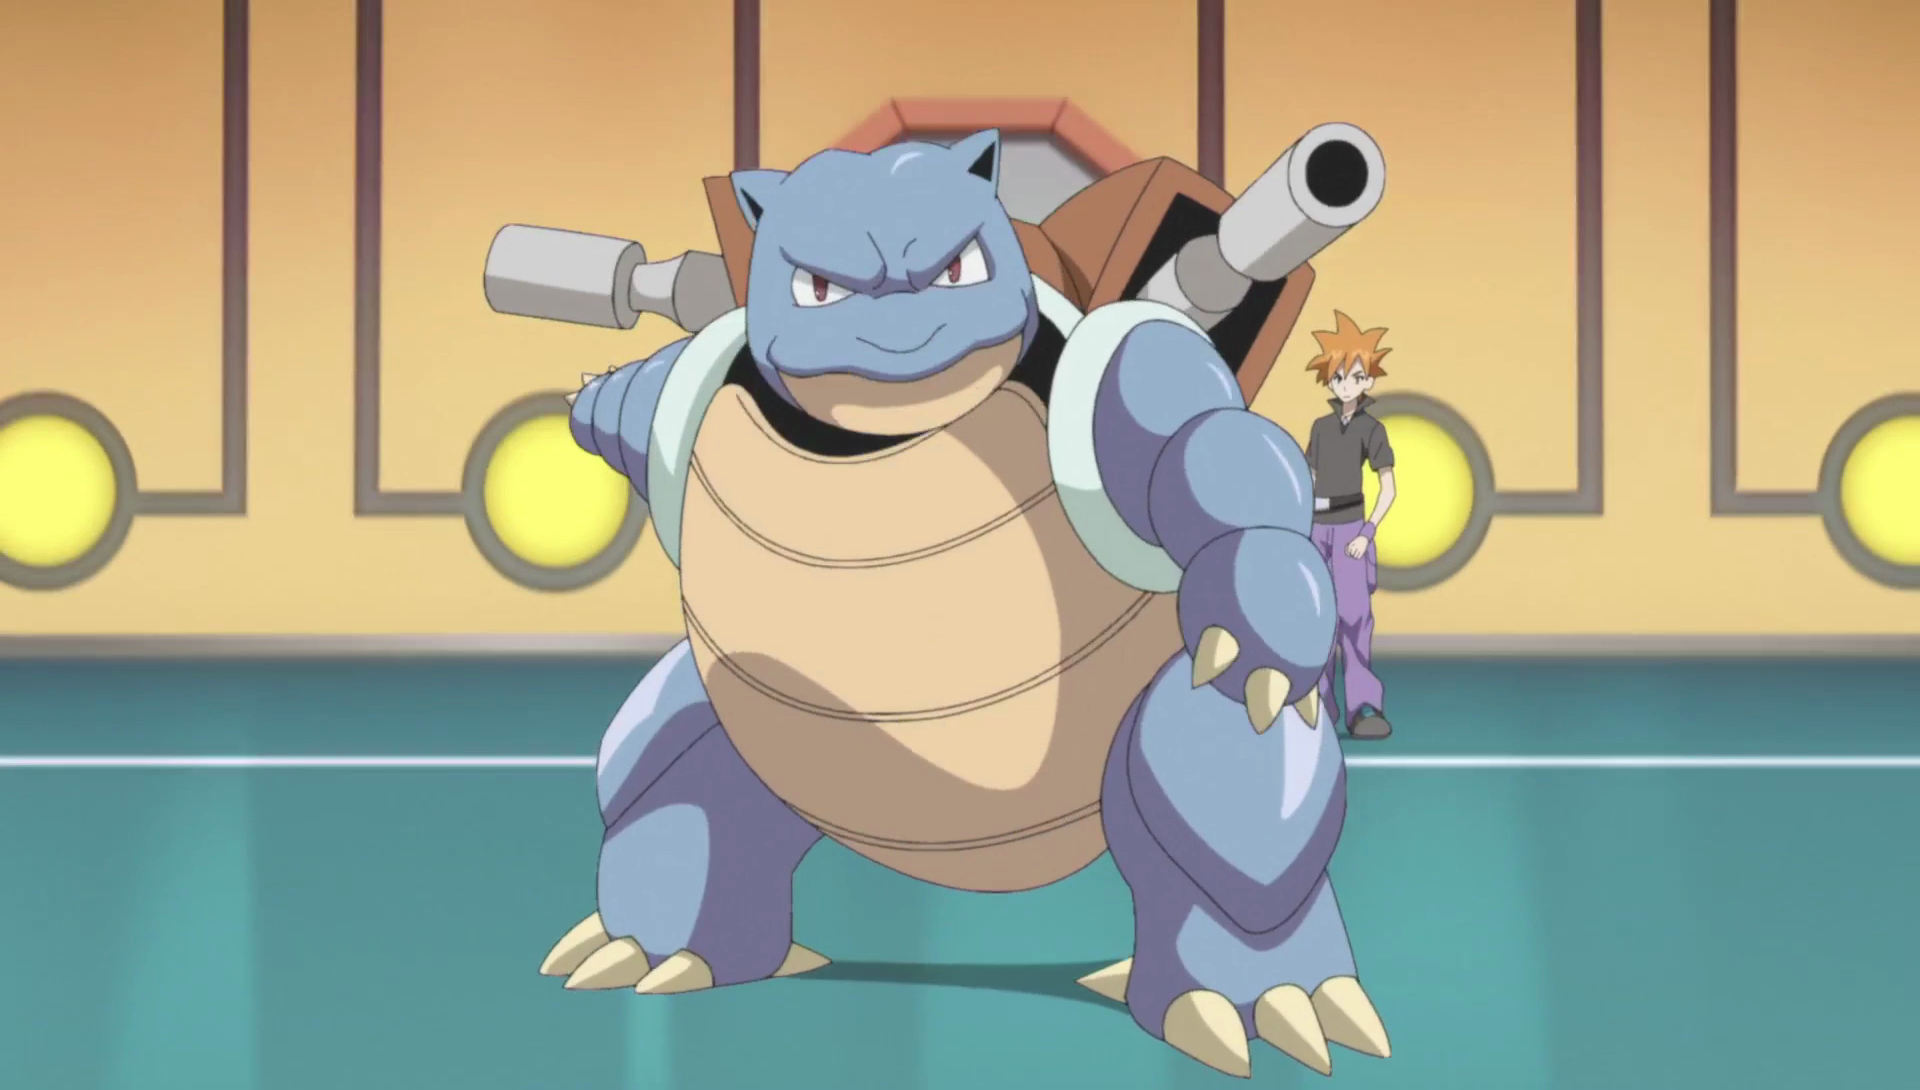 Blue Blastoise Generations